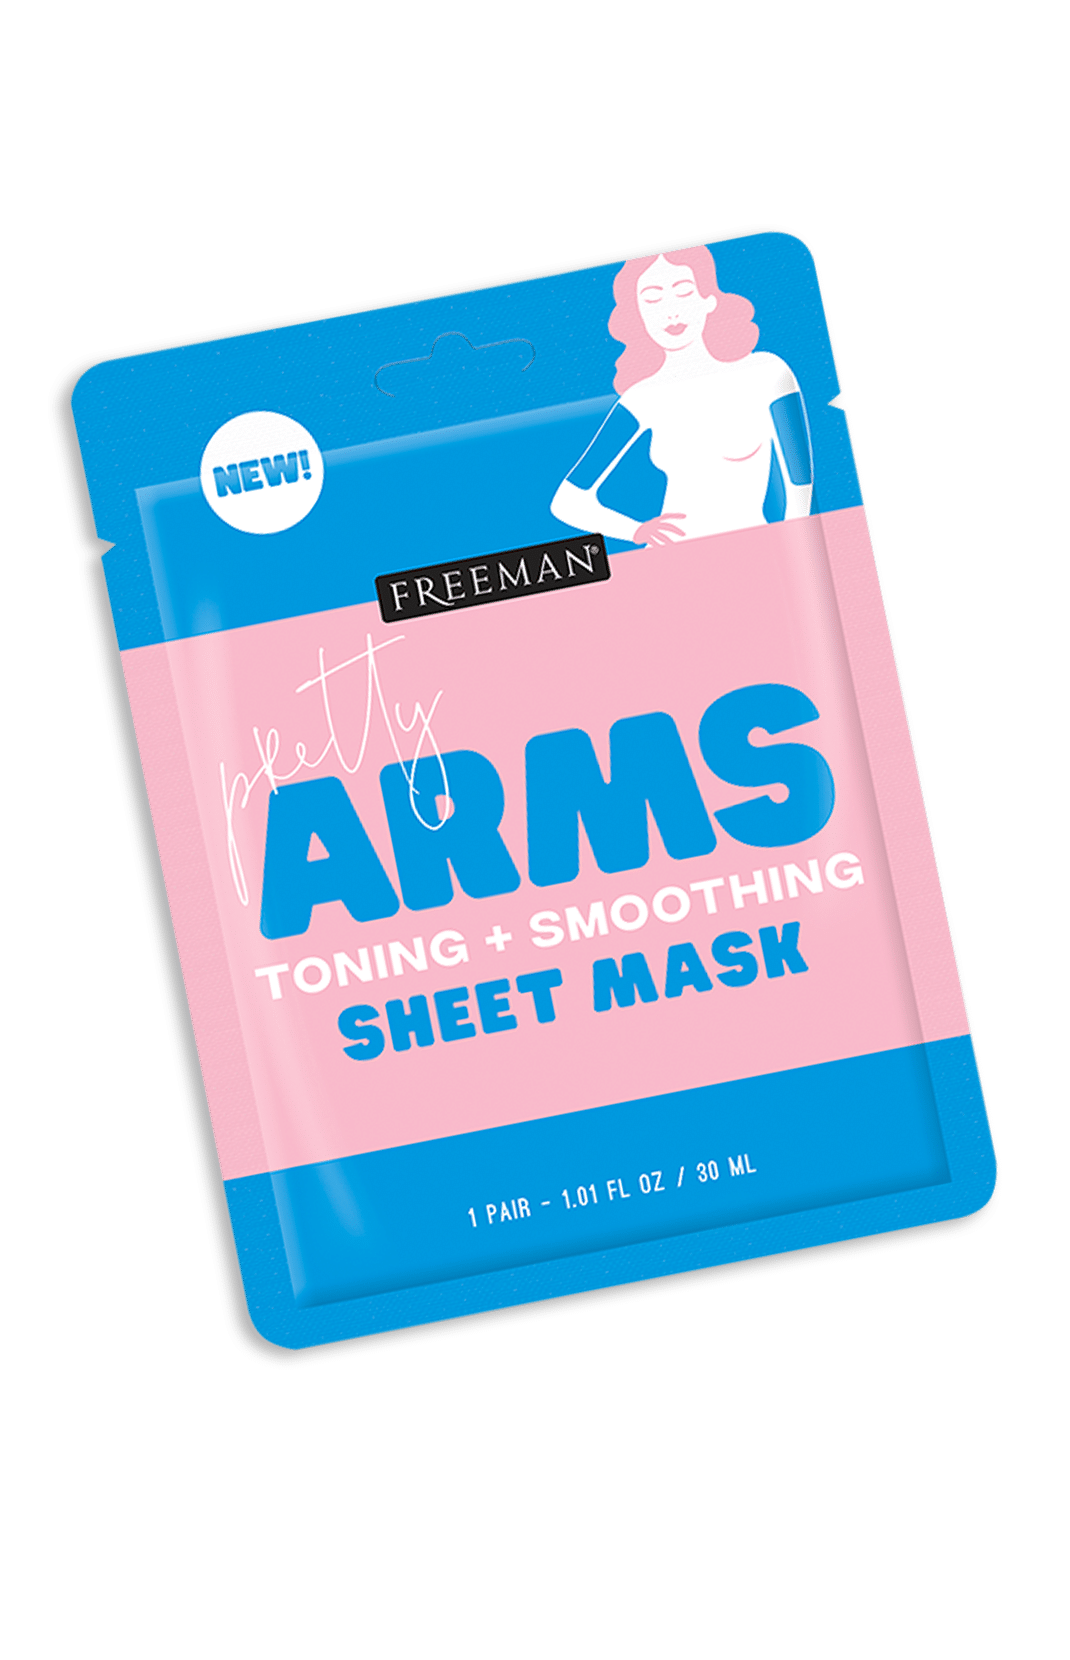 Pretty Arms Toning + Smoothing Sheet Mask